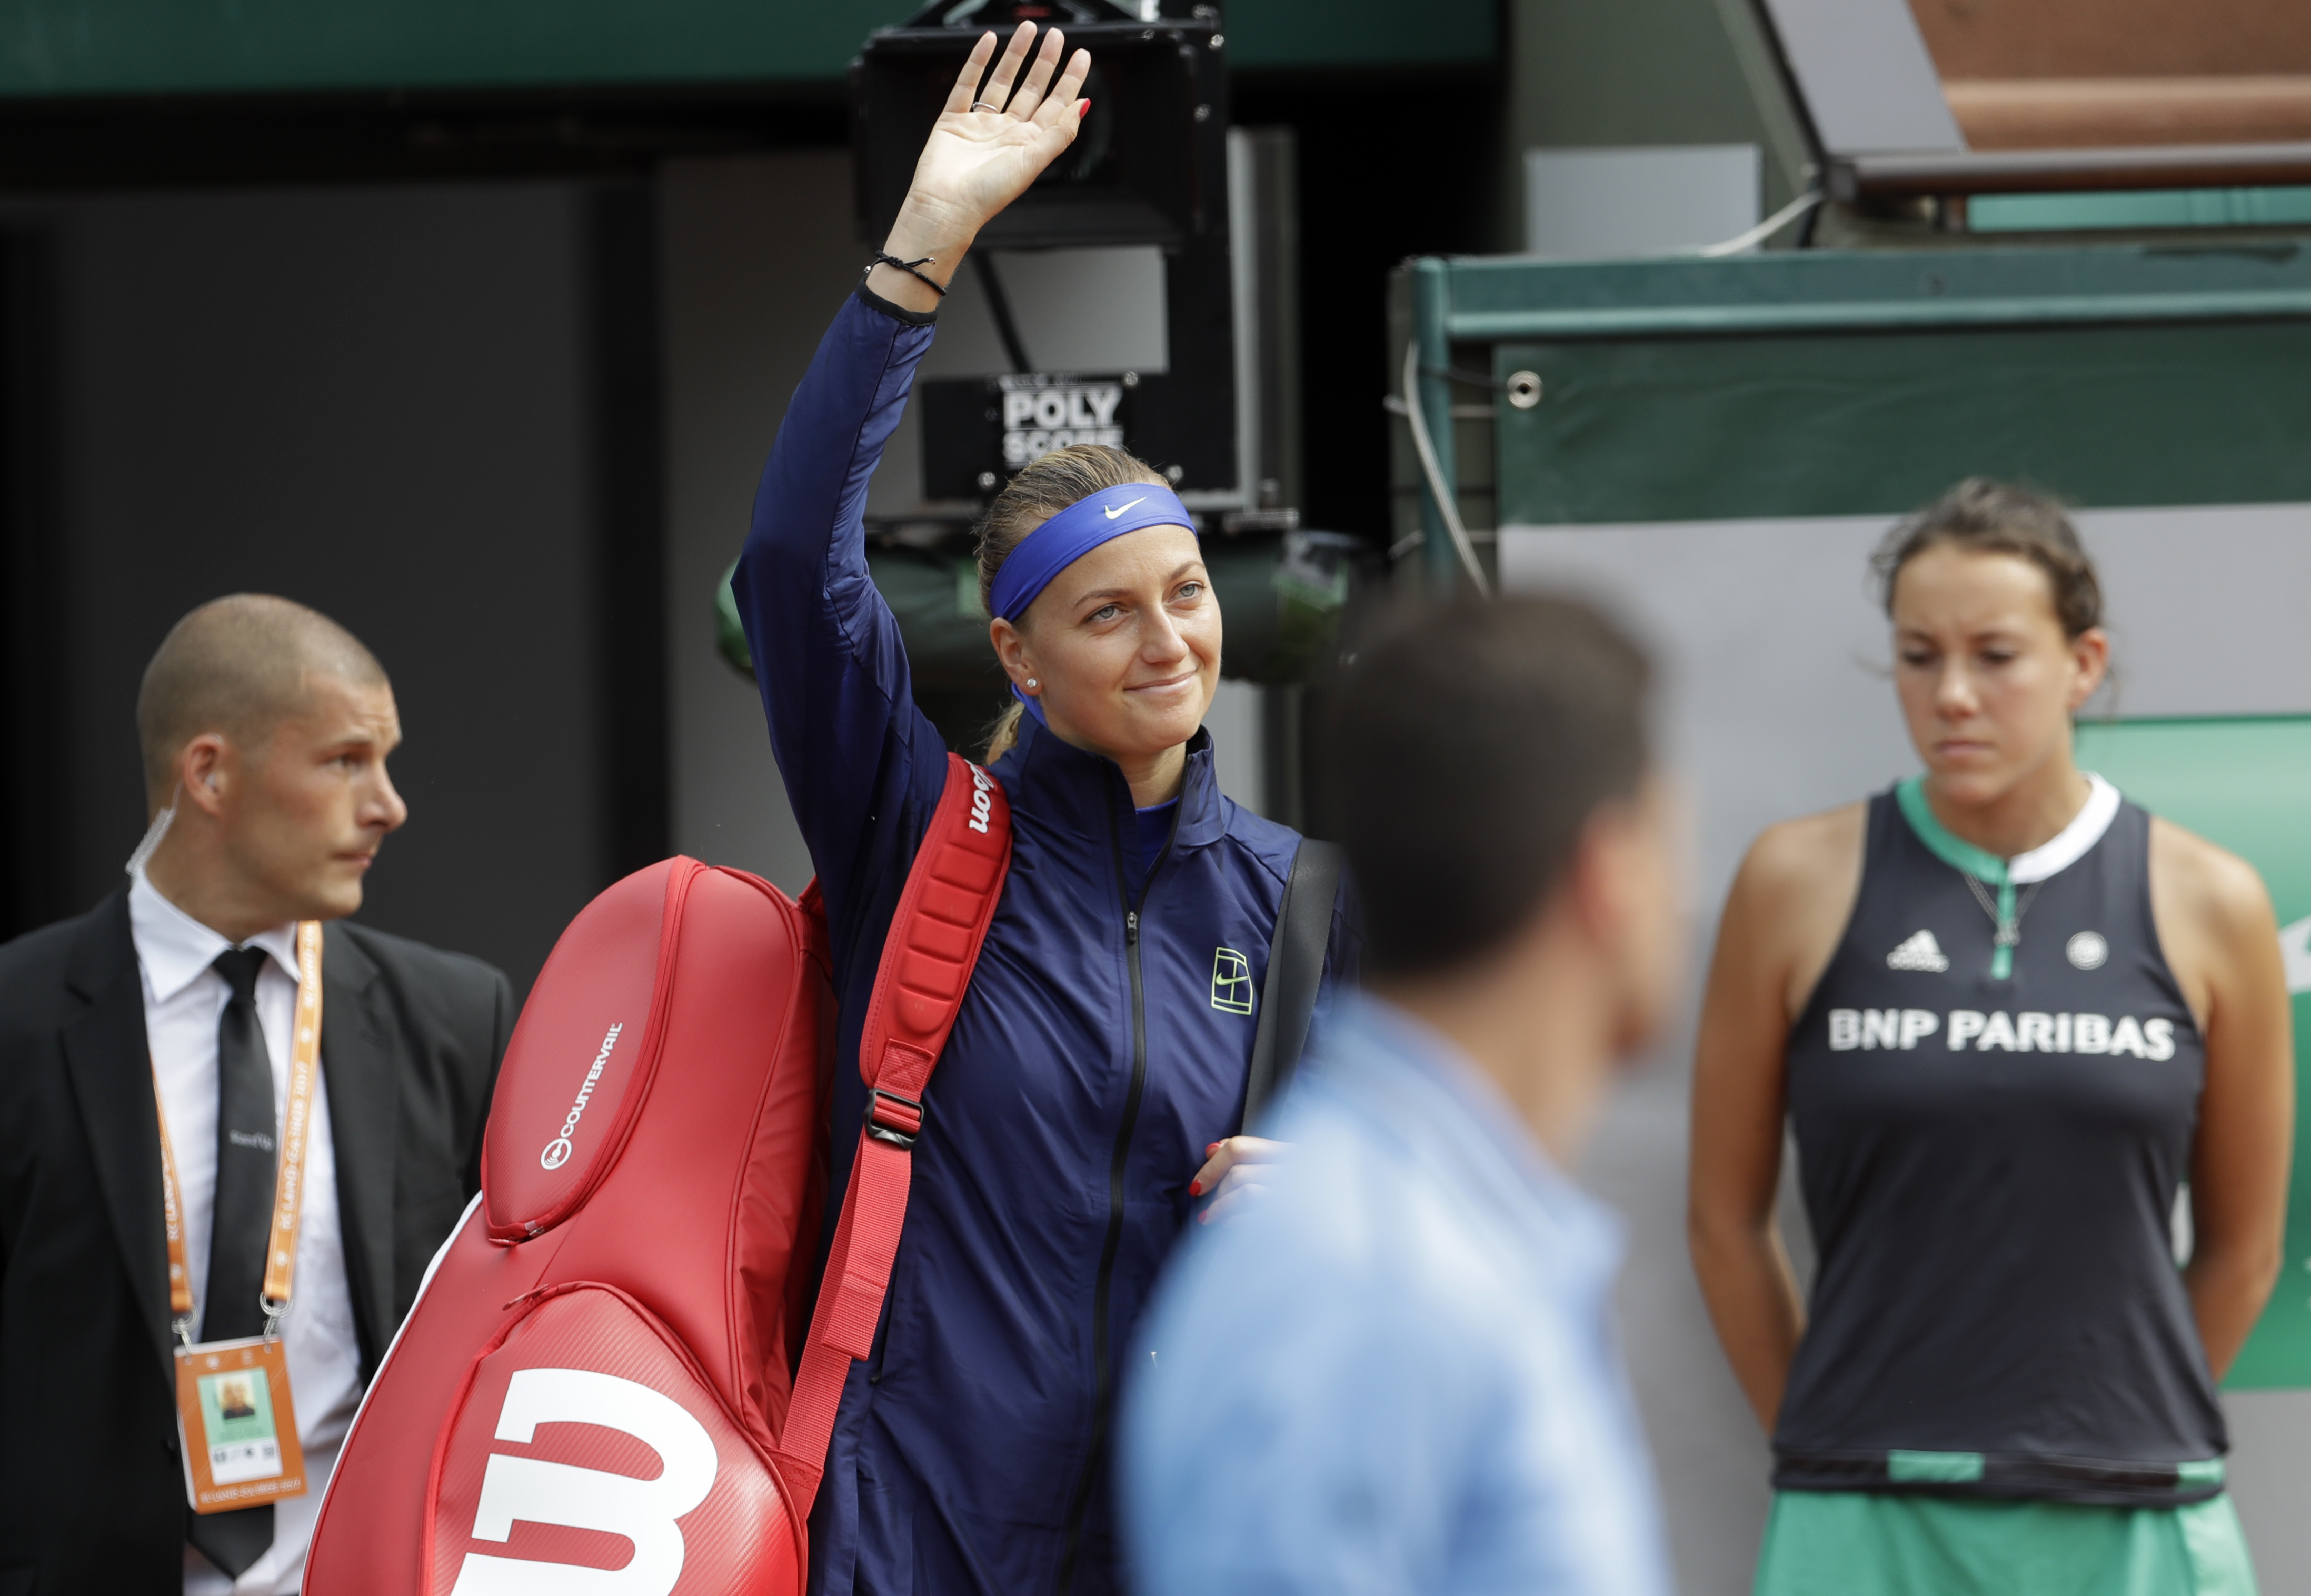 Petra Kvitova of the Czech Republic arrives to play Julia Boserup, of the U.S, for their first round match of the French Open tennis tournament at the Roland Garros stadium, Sunday, May 28, 2017 in Paris. (AP Photo/Petr David Josek)